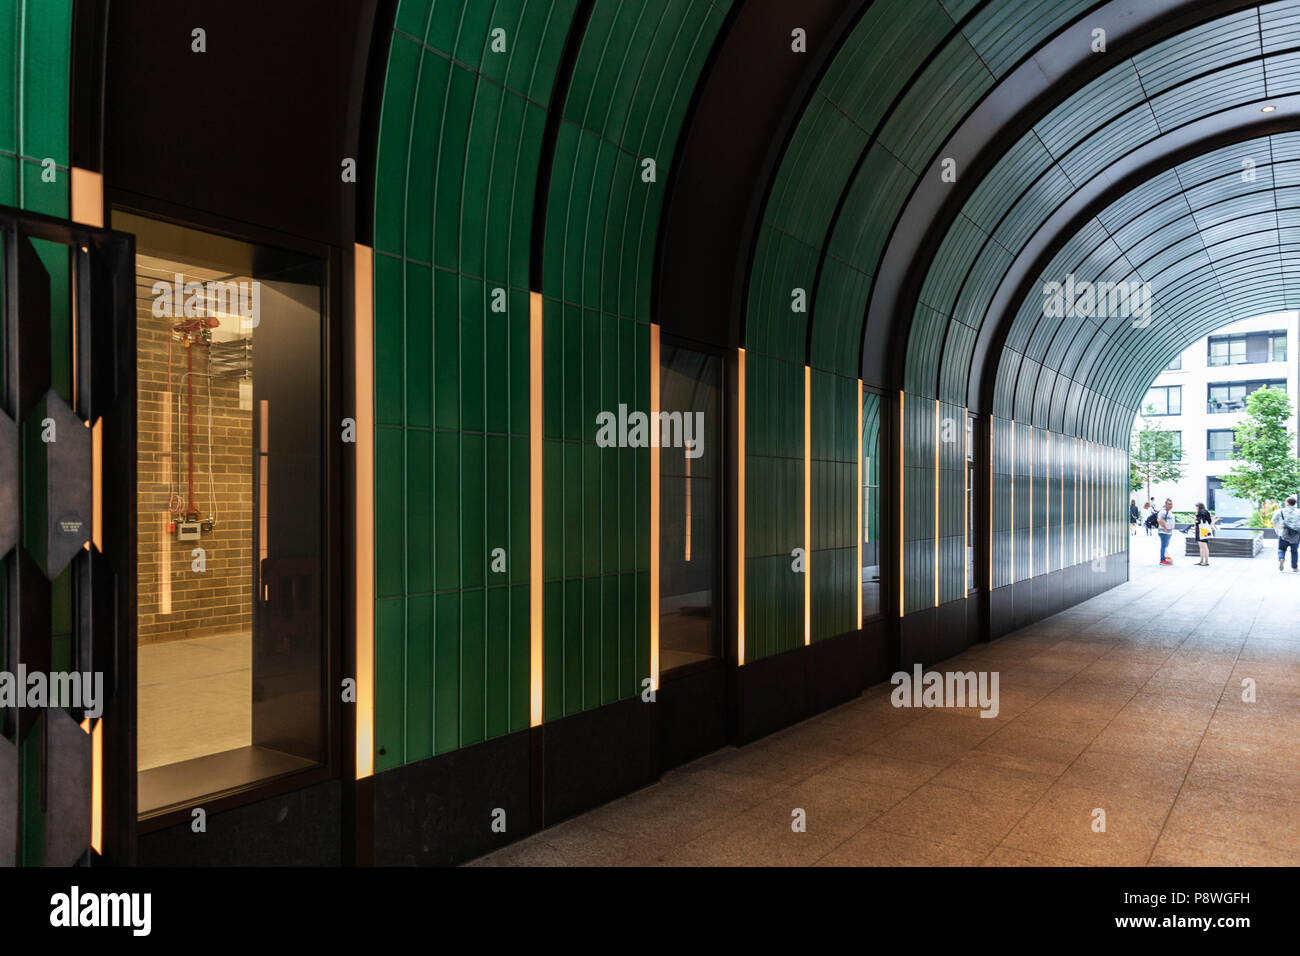 Arched passageway, London, England, UK. - Stock Image